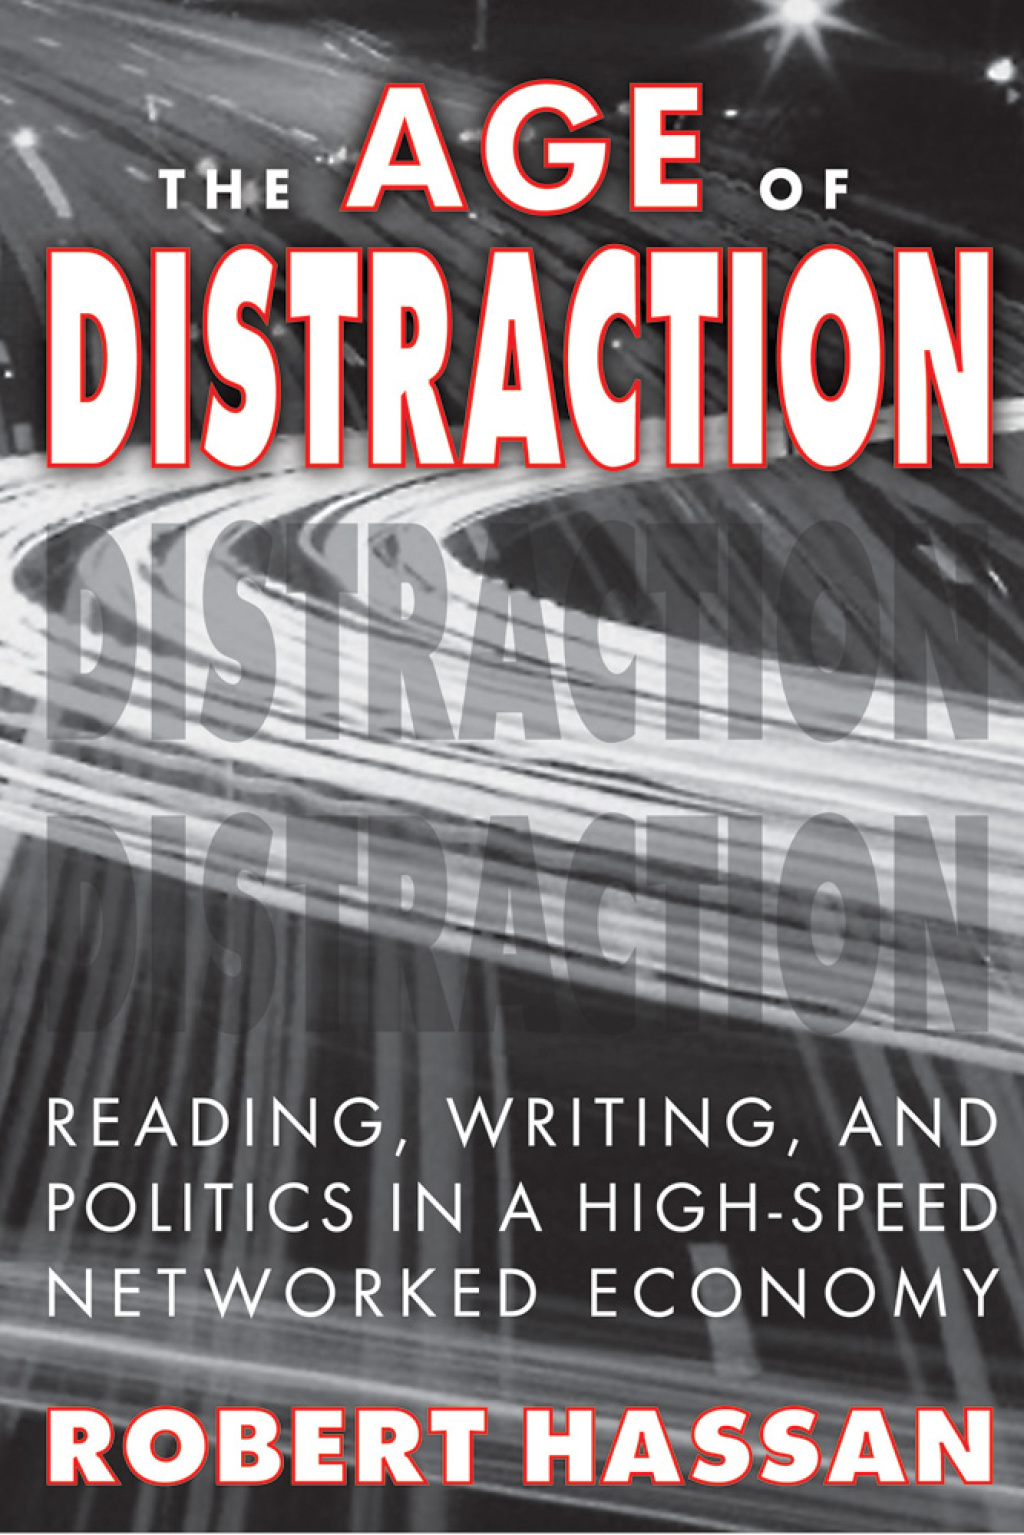 The Age of Distraction (eBook)